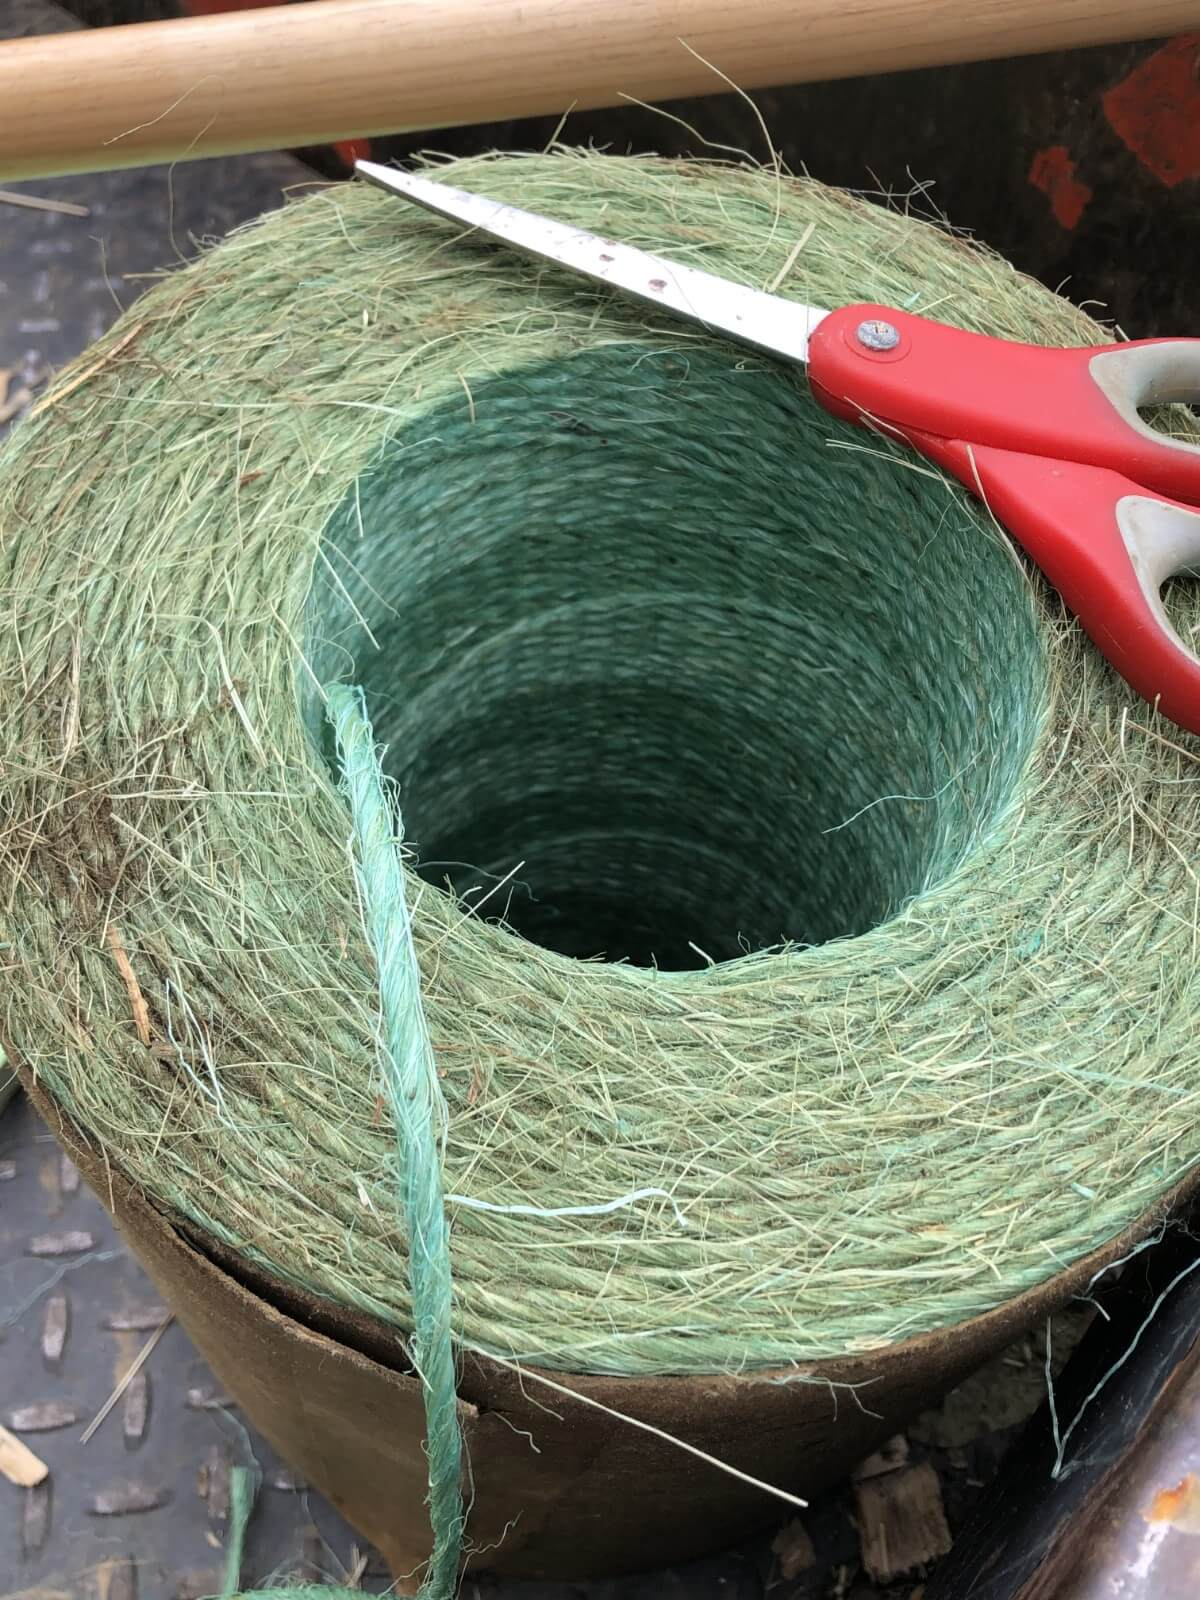 Roll of baling twine